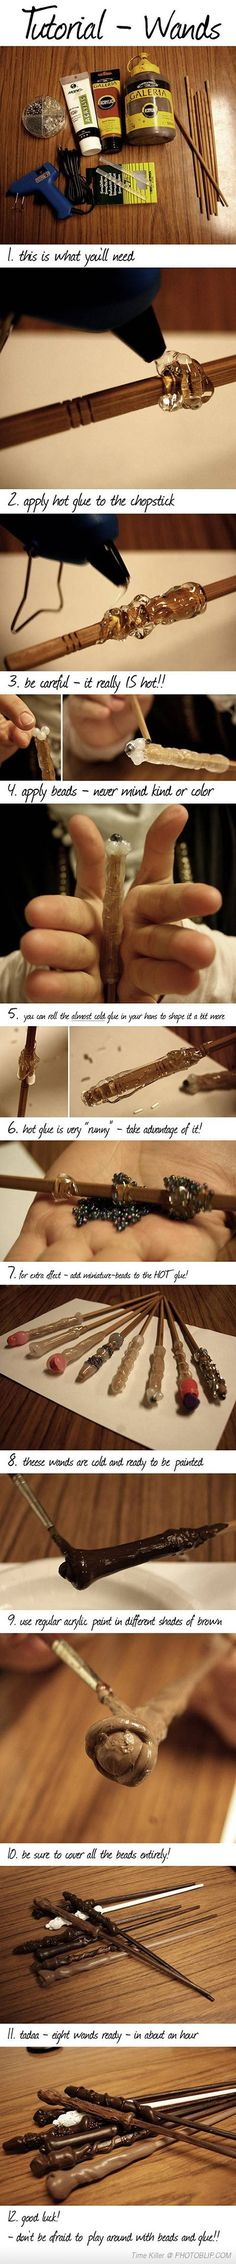 How To Make A Wand With Everyday Things... I only suggest this for beginners, as you really want a wand that calls to you, and not a wand created with a chop stick. Feel free to use natural wood from a branch that has been blessed instead...  Many Magicks... ☽✪☾